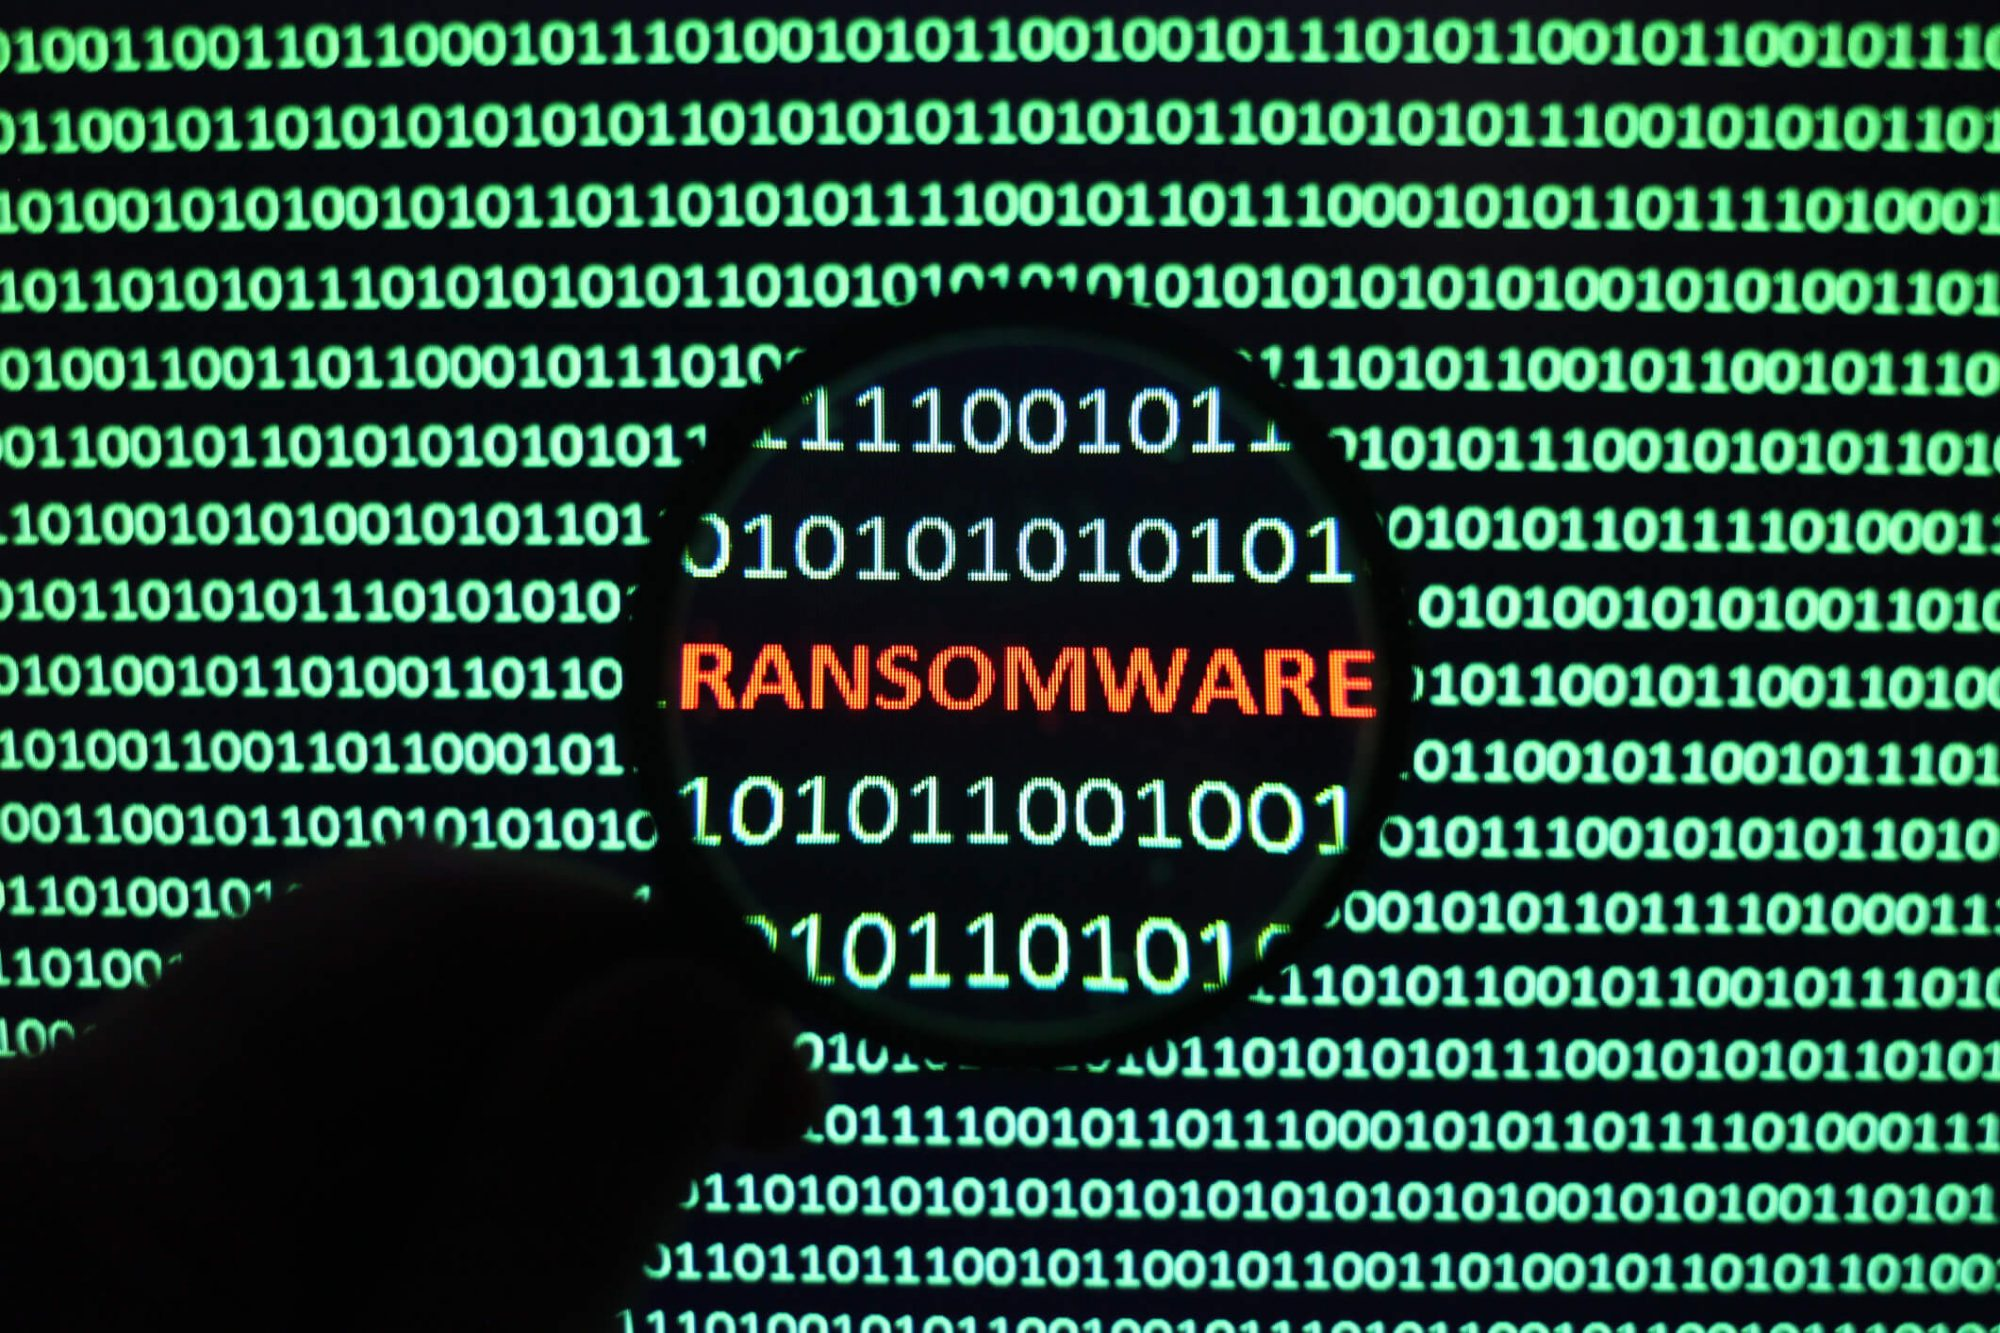 Ransomware image - in magnifying glass